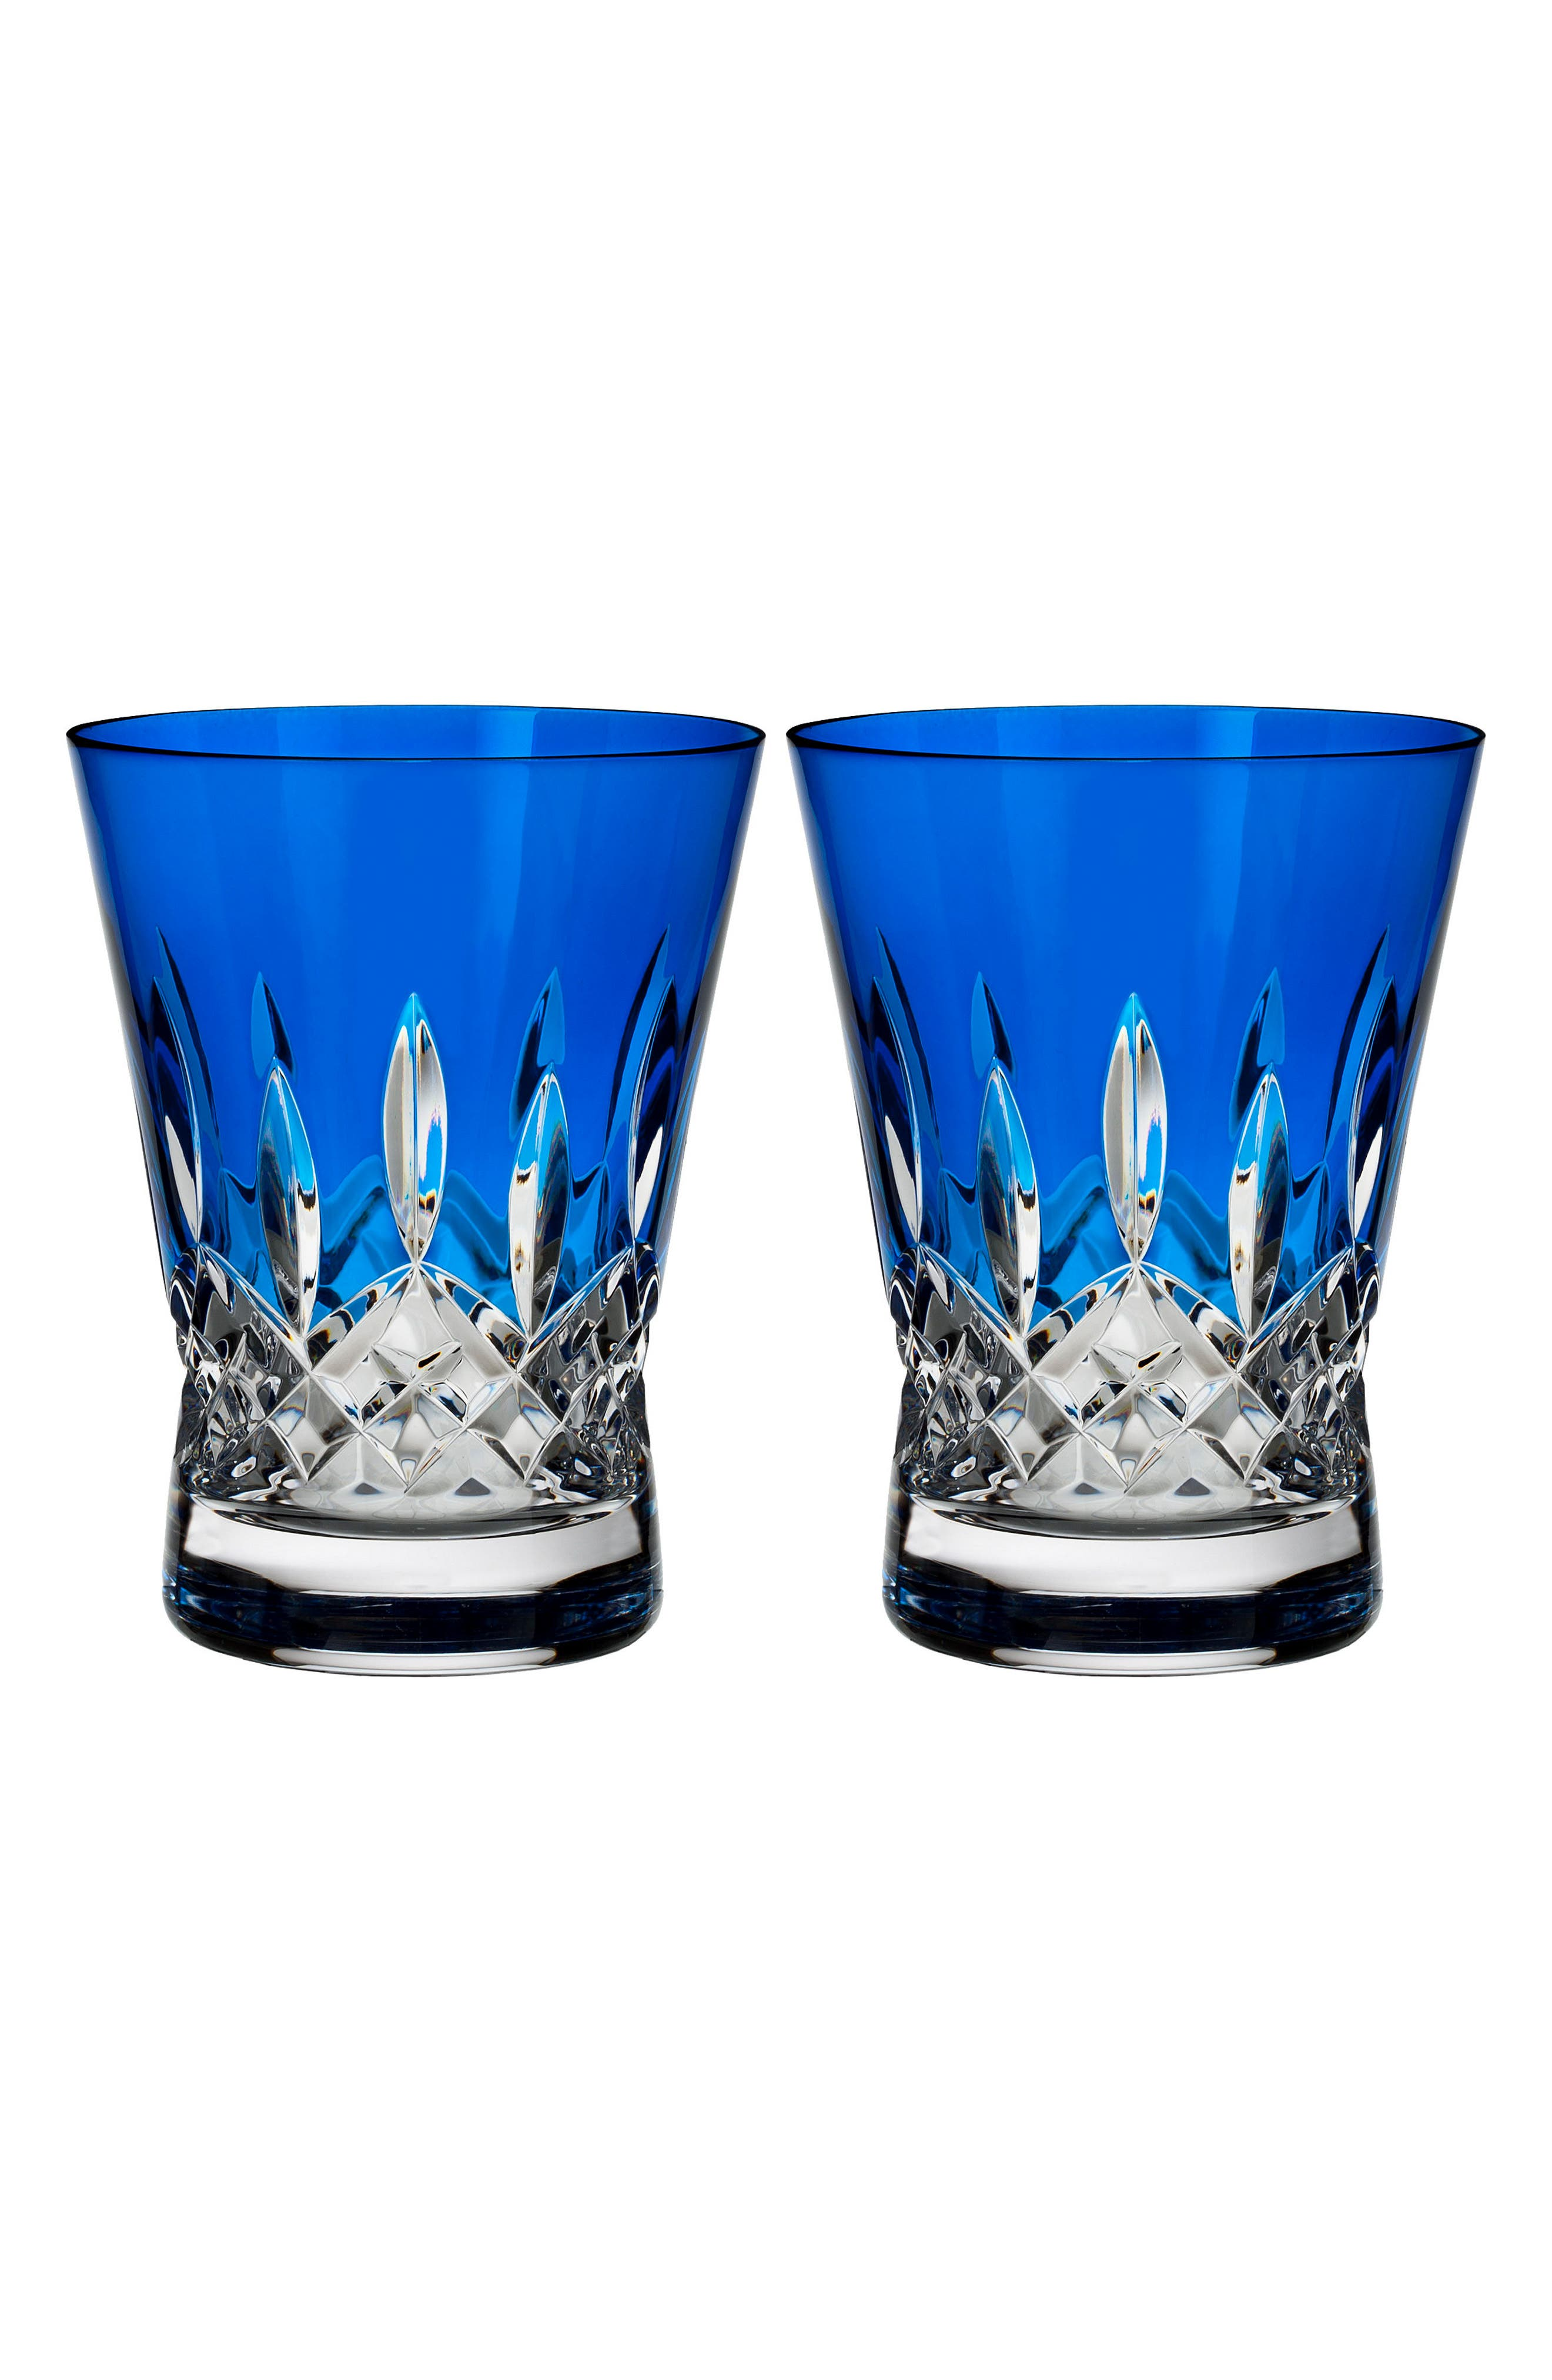 Lismore Pops Set of 2 Cobalt Lead Crystal Double Old Fashioned Glasses,                             Main thumbnail 1, color,                             Crystal